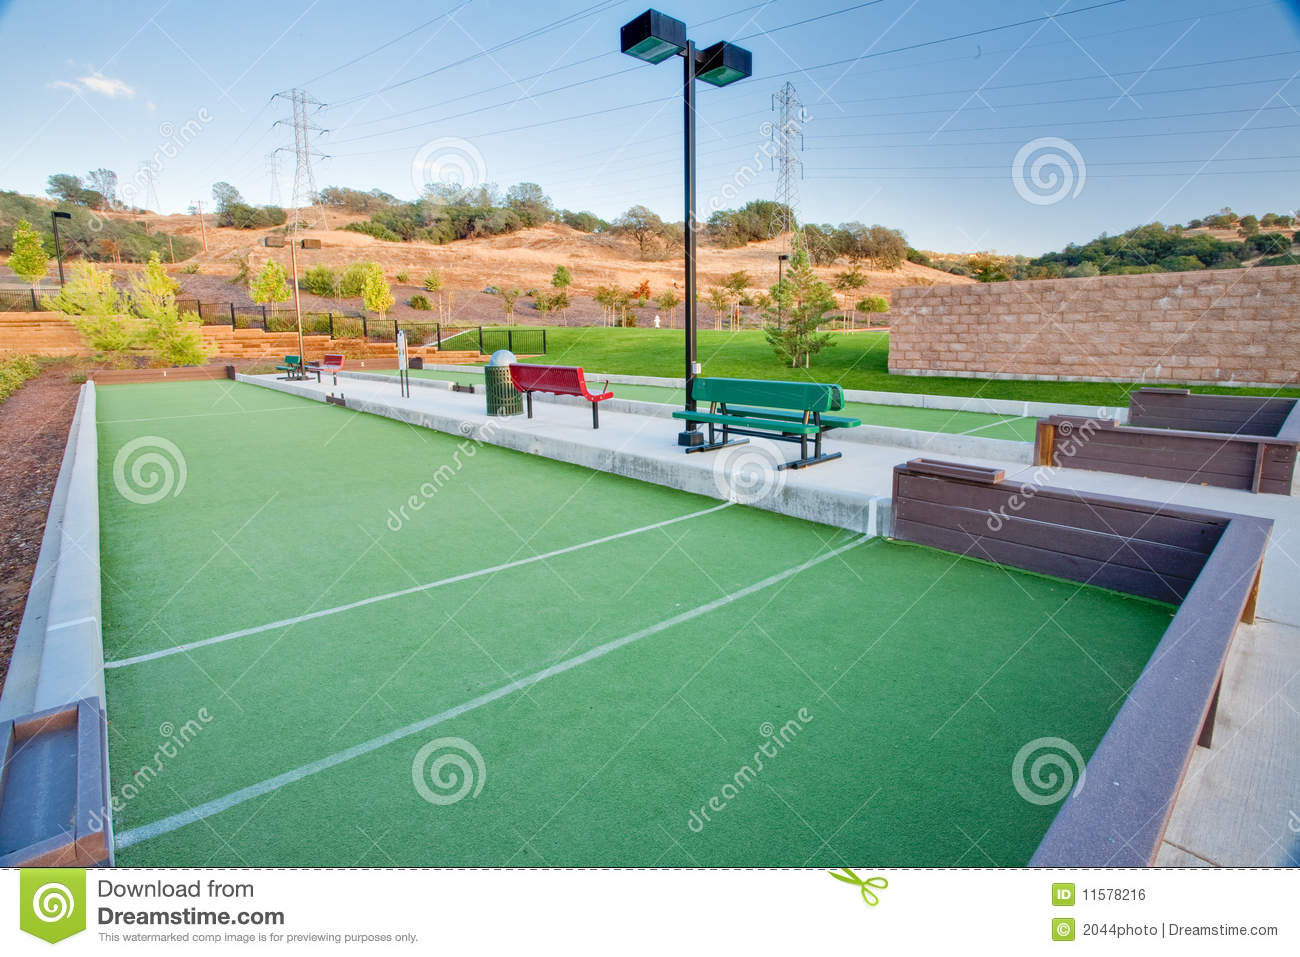 Bocce Ball Lawn Bowling : Bocce Ball (lawn bowling) courts in a public park